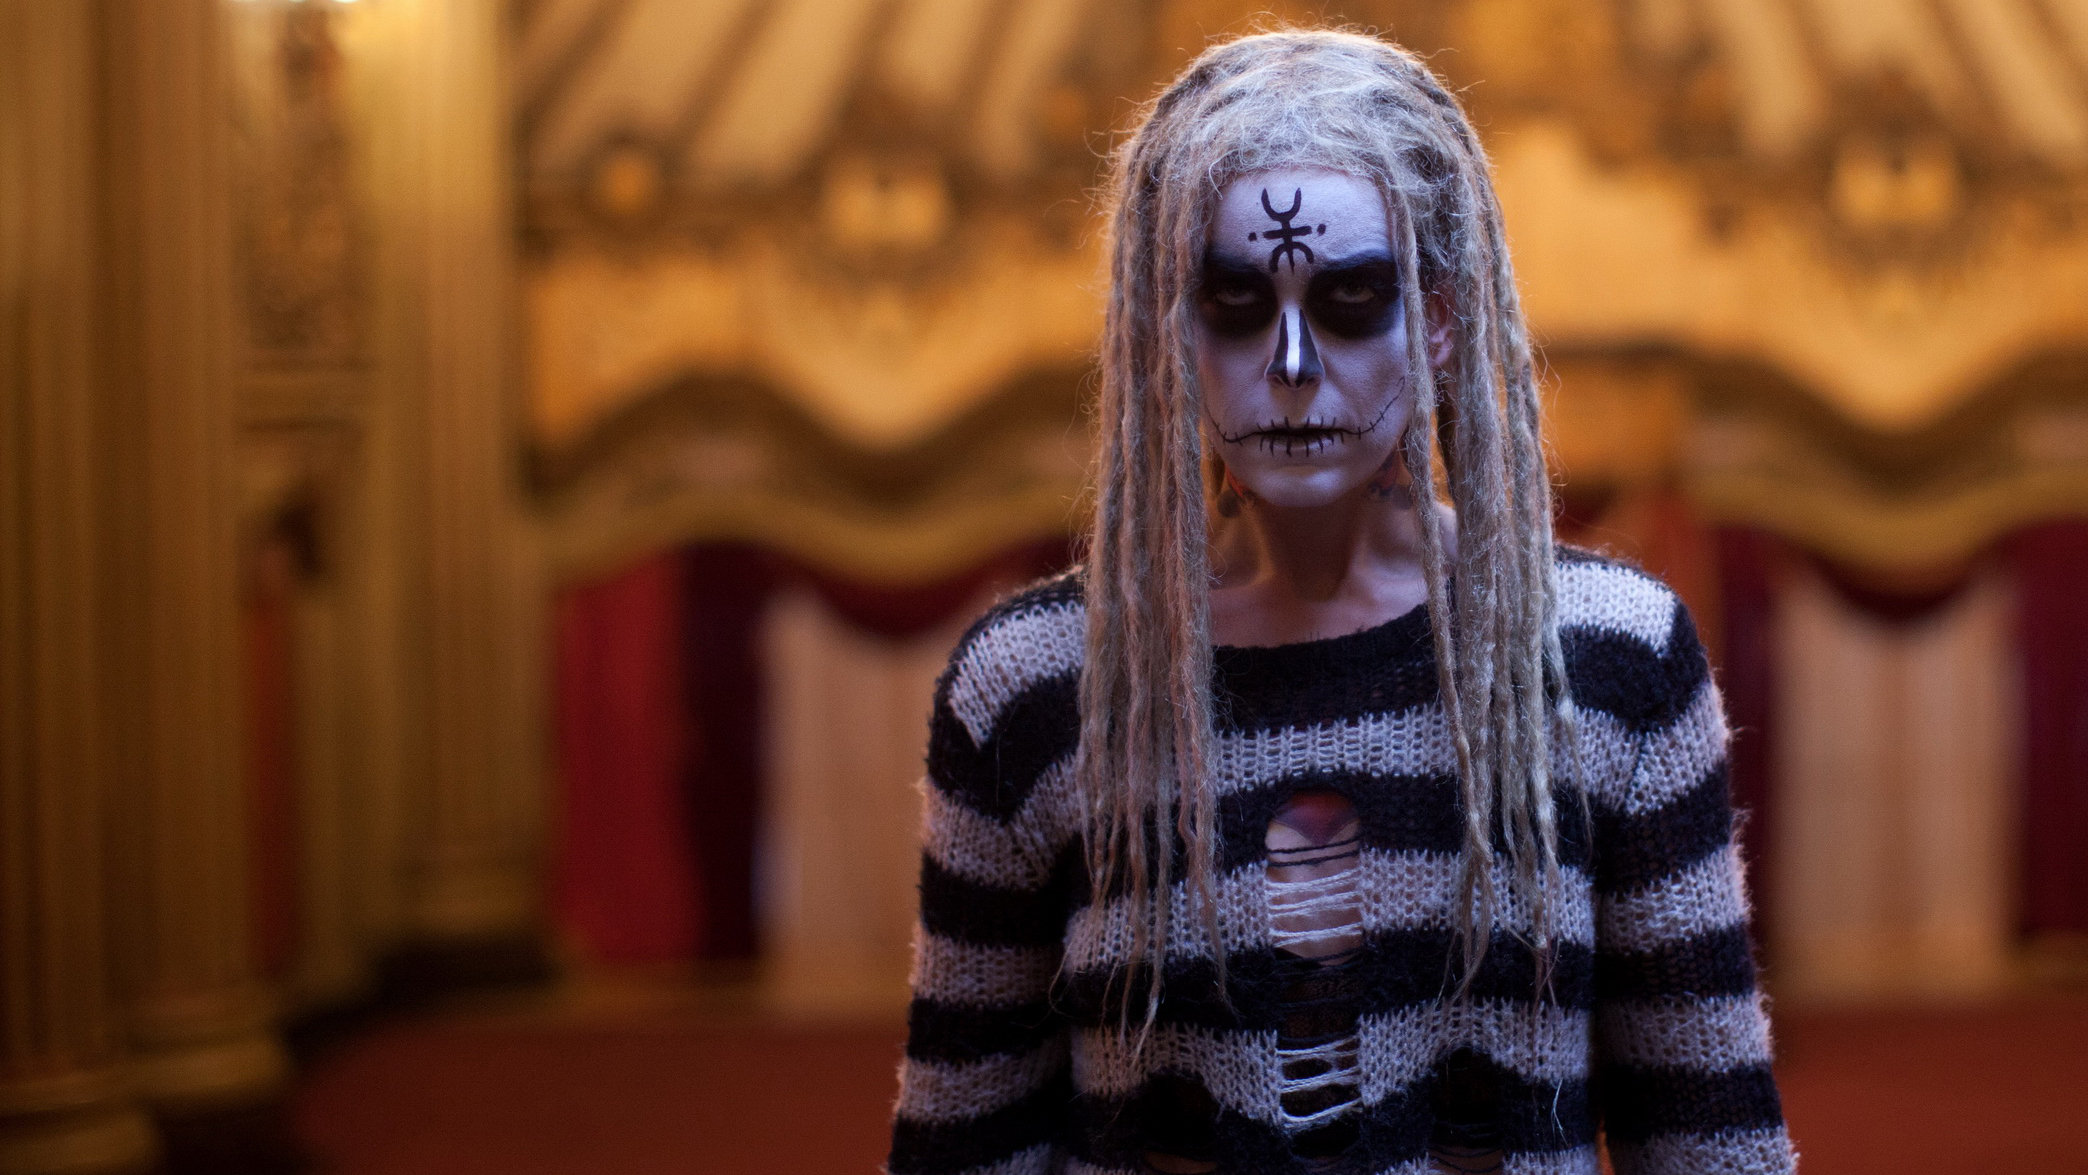 The Tragedy of Fate in 'The Lords of Salem'